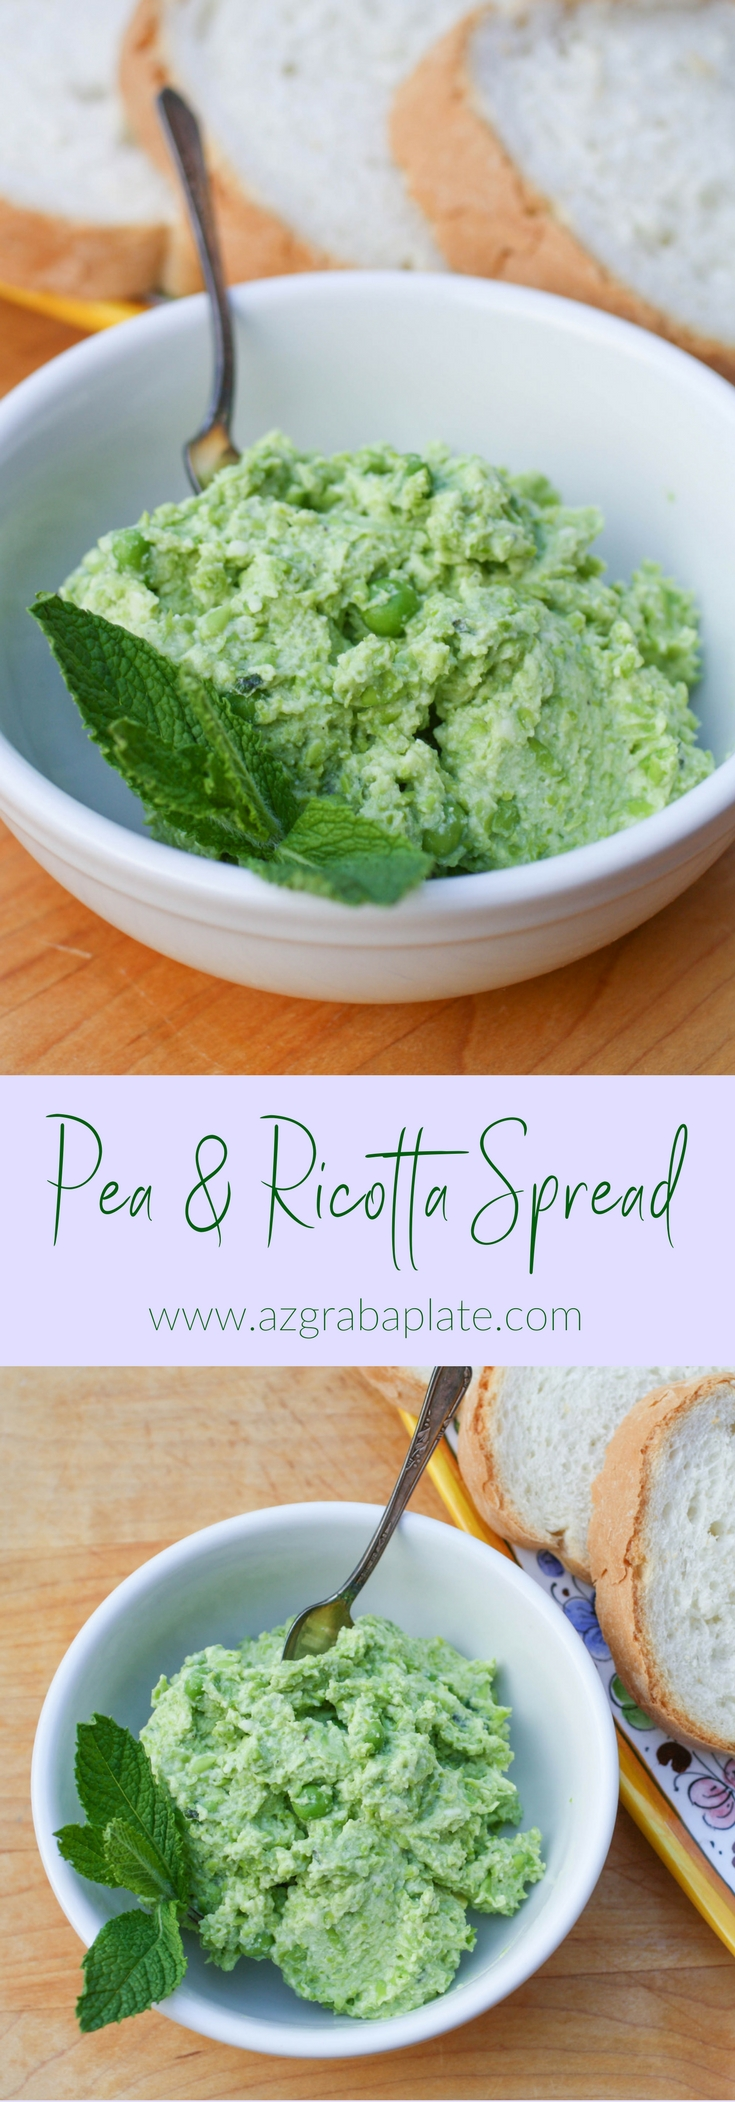 Pea and Ricotta Spread is a fresh and flavorful appetizer that's perfect for spring! You'll enjoy the fresh flavor in this Pea and Ricotta Spread!